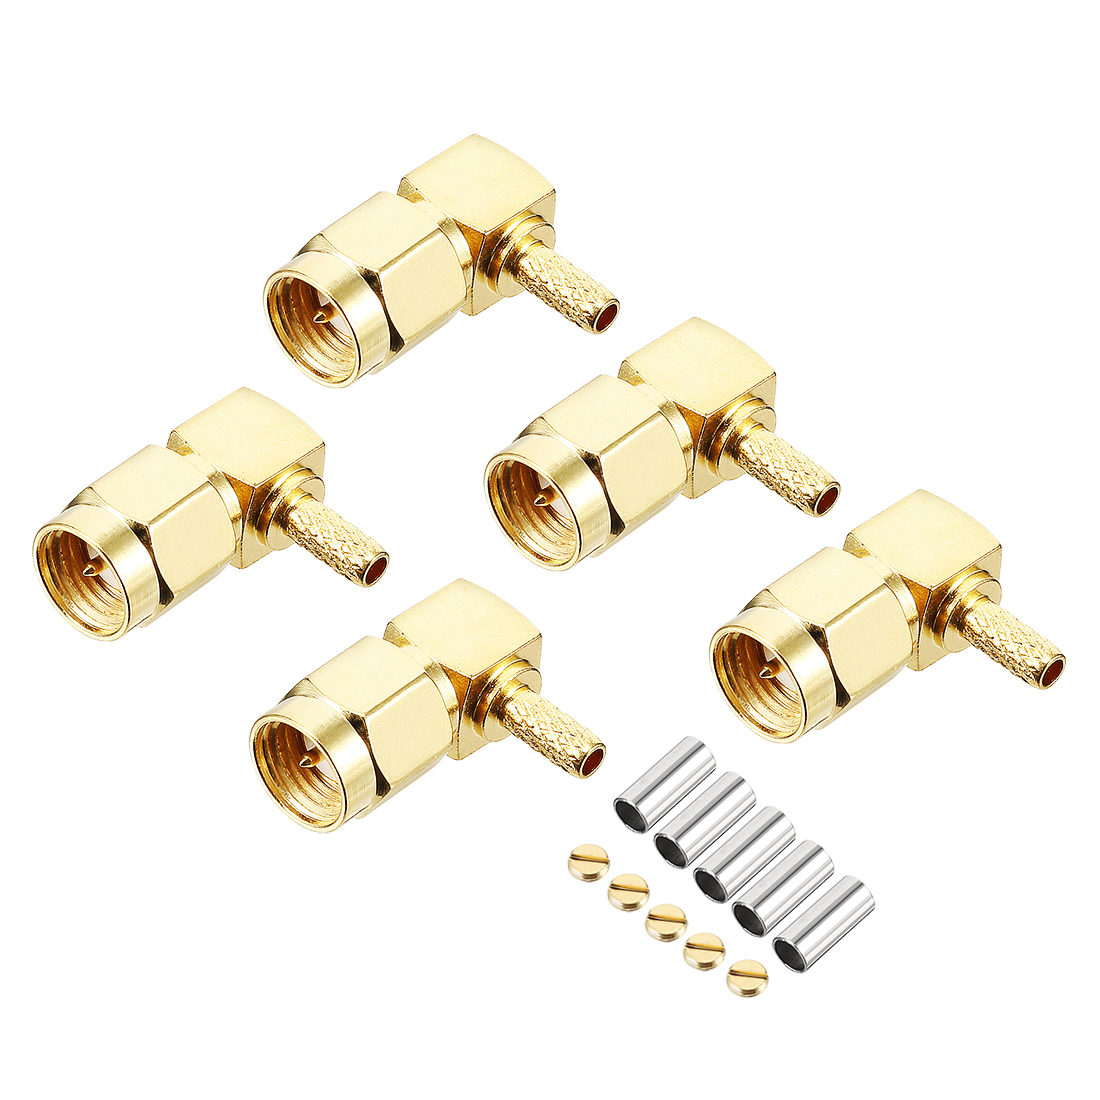 5pcs Gold Tone Right-angle SMA Male Jack RF Coaxial Adapter Connector